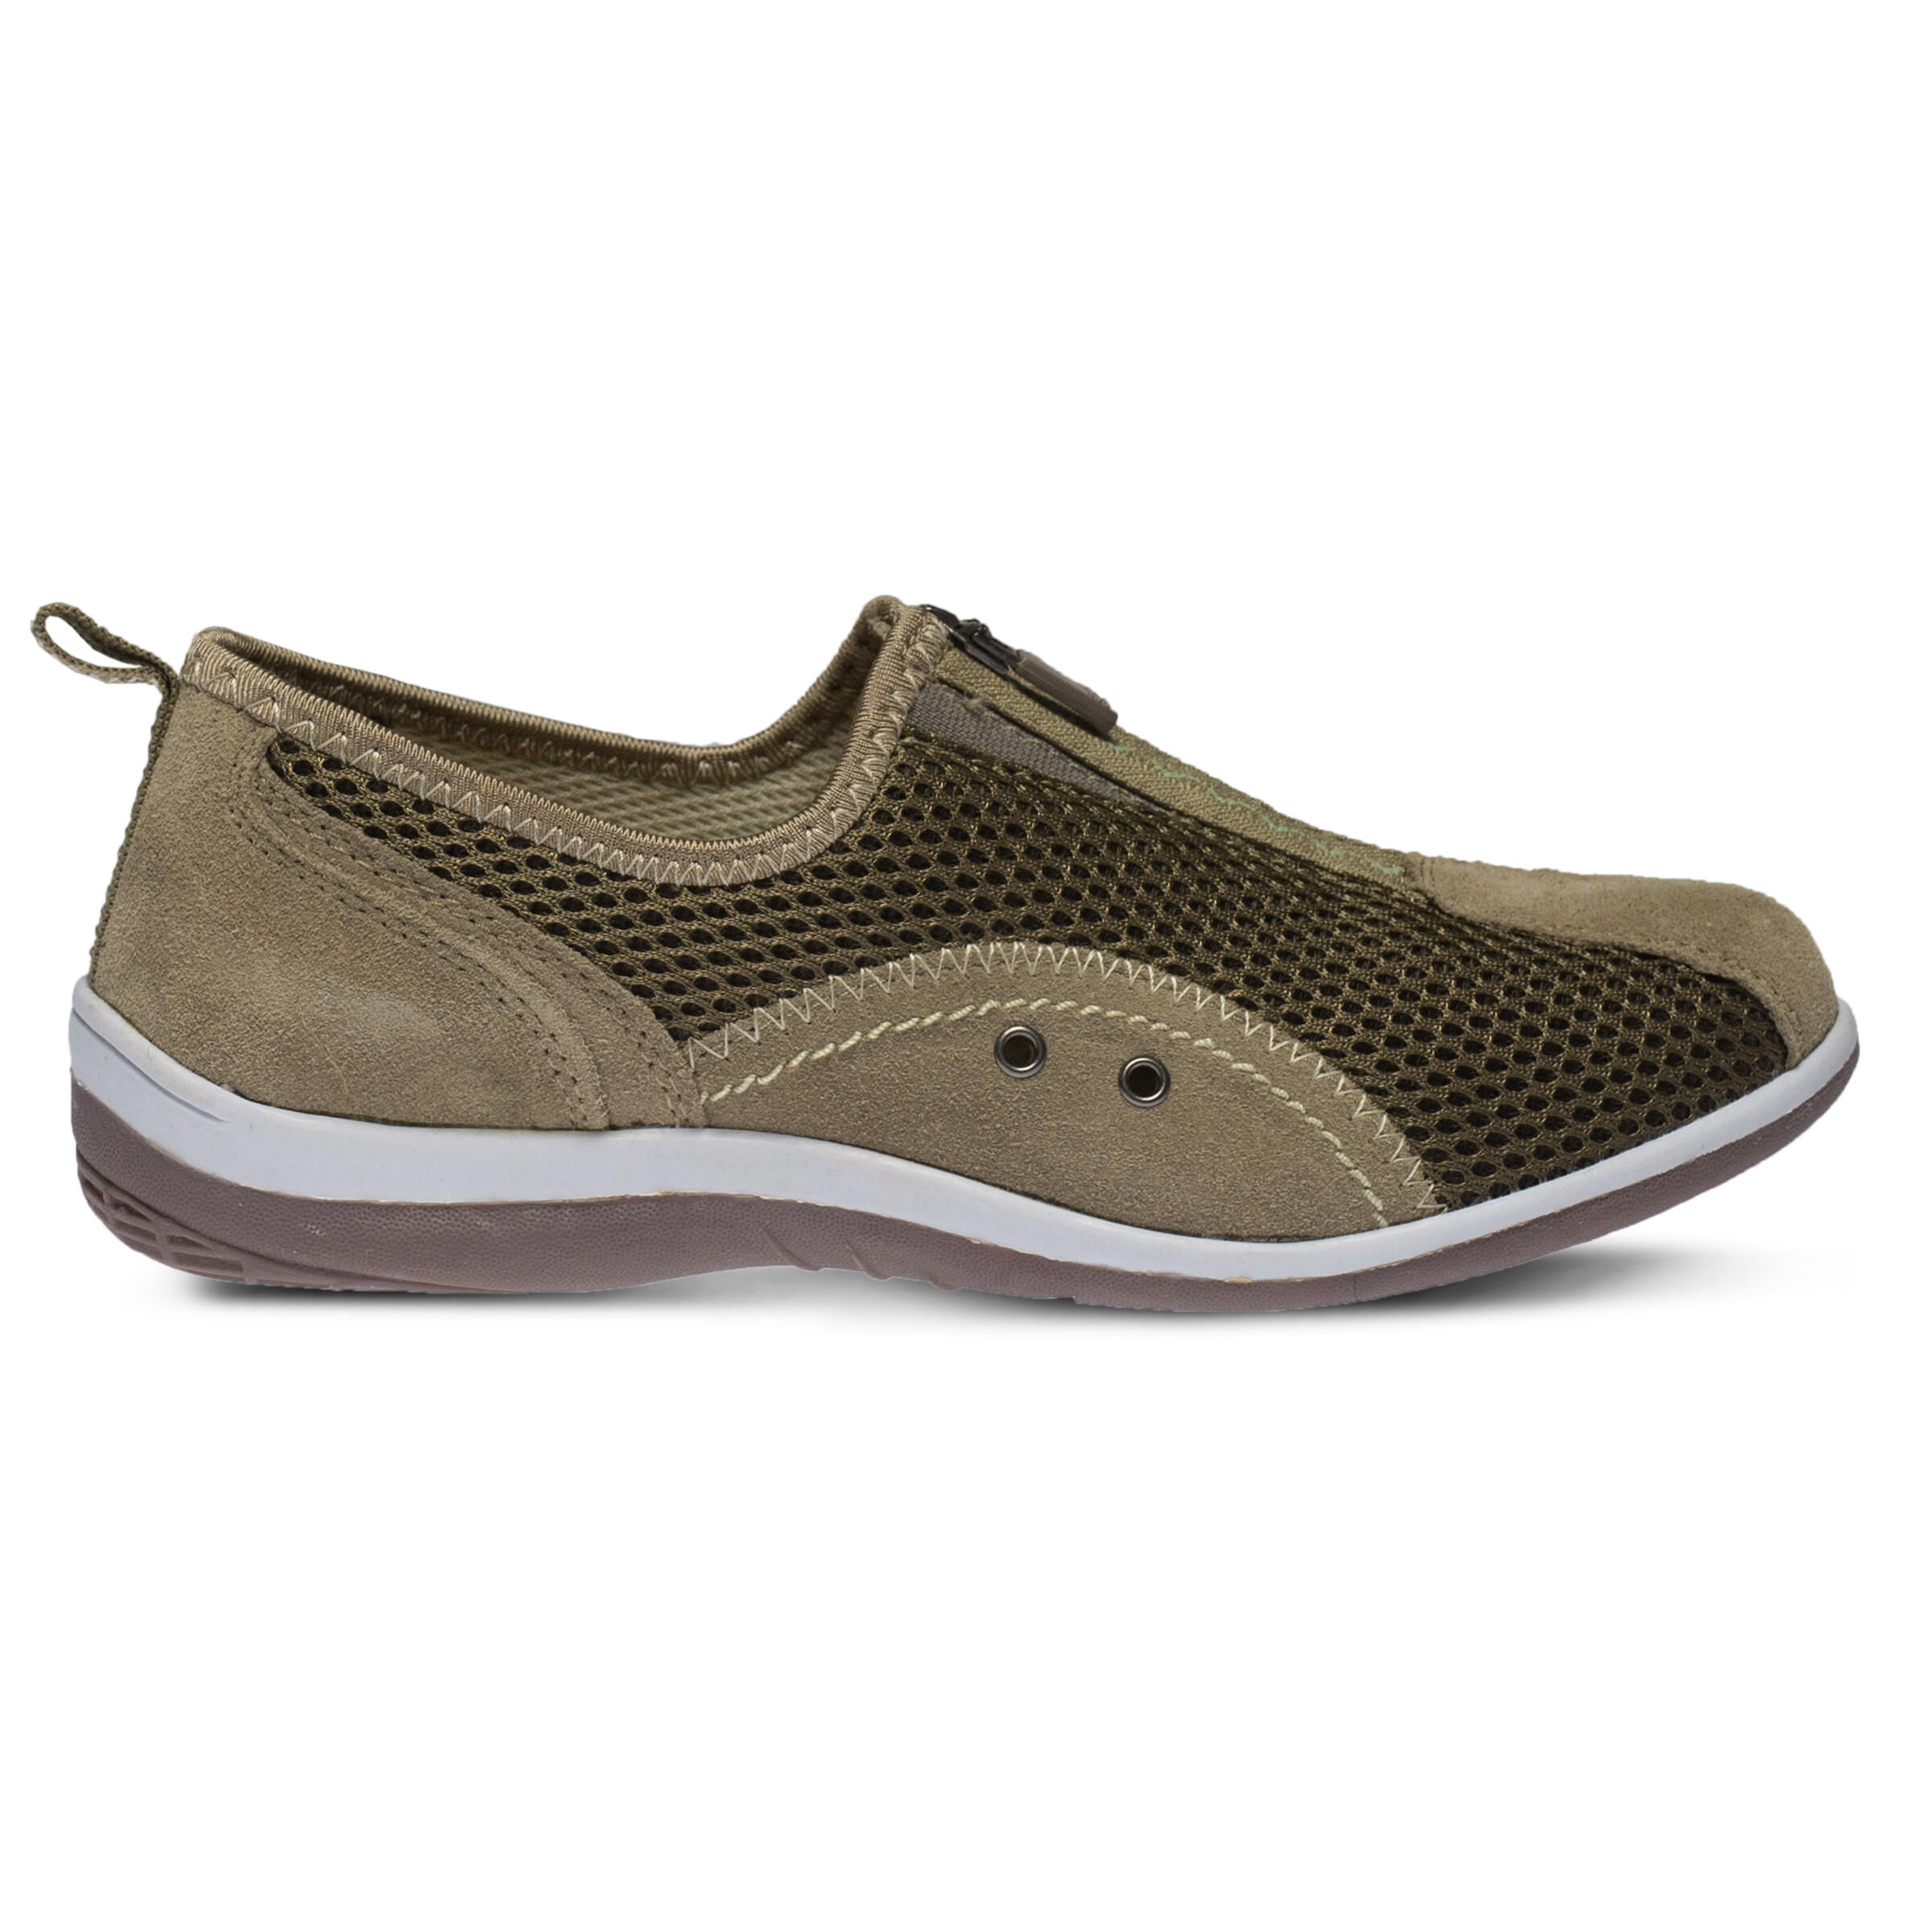 Women's SPRING STEP Racer Slip-Ons Taupe